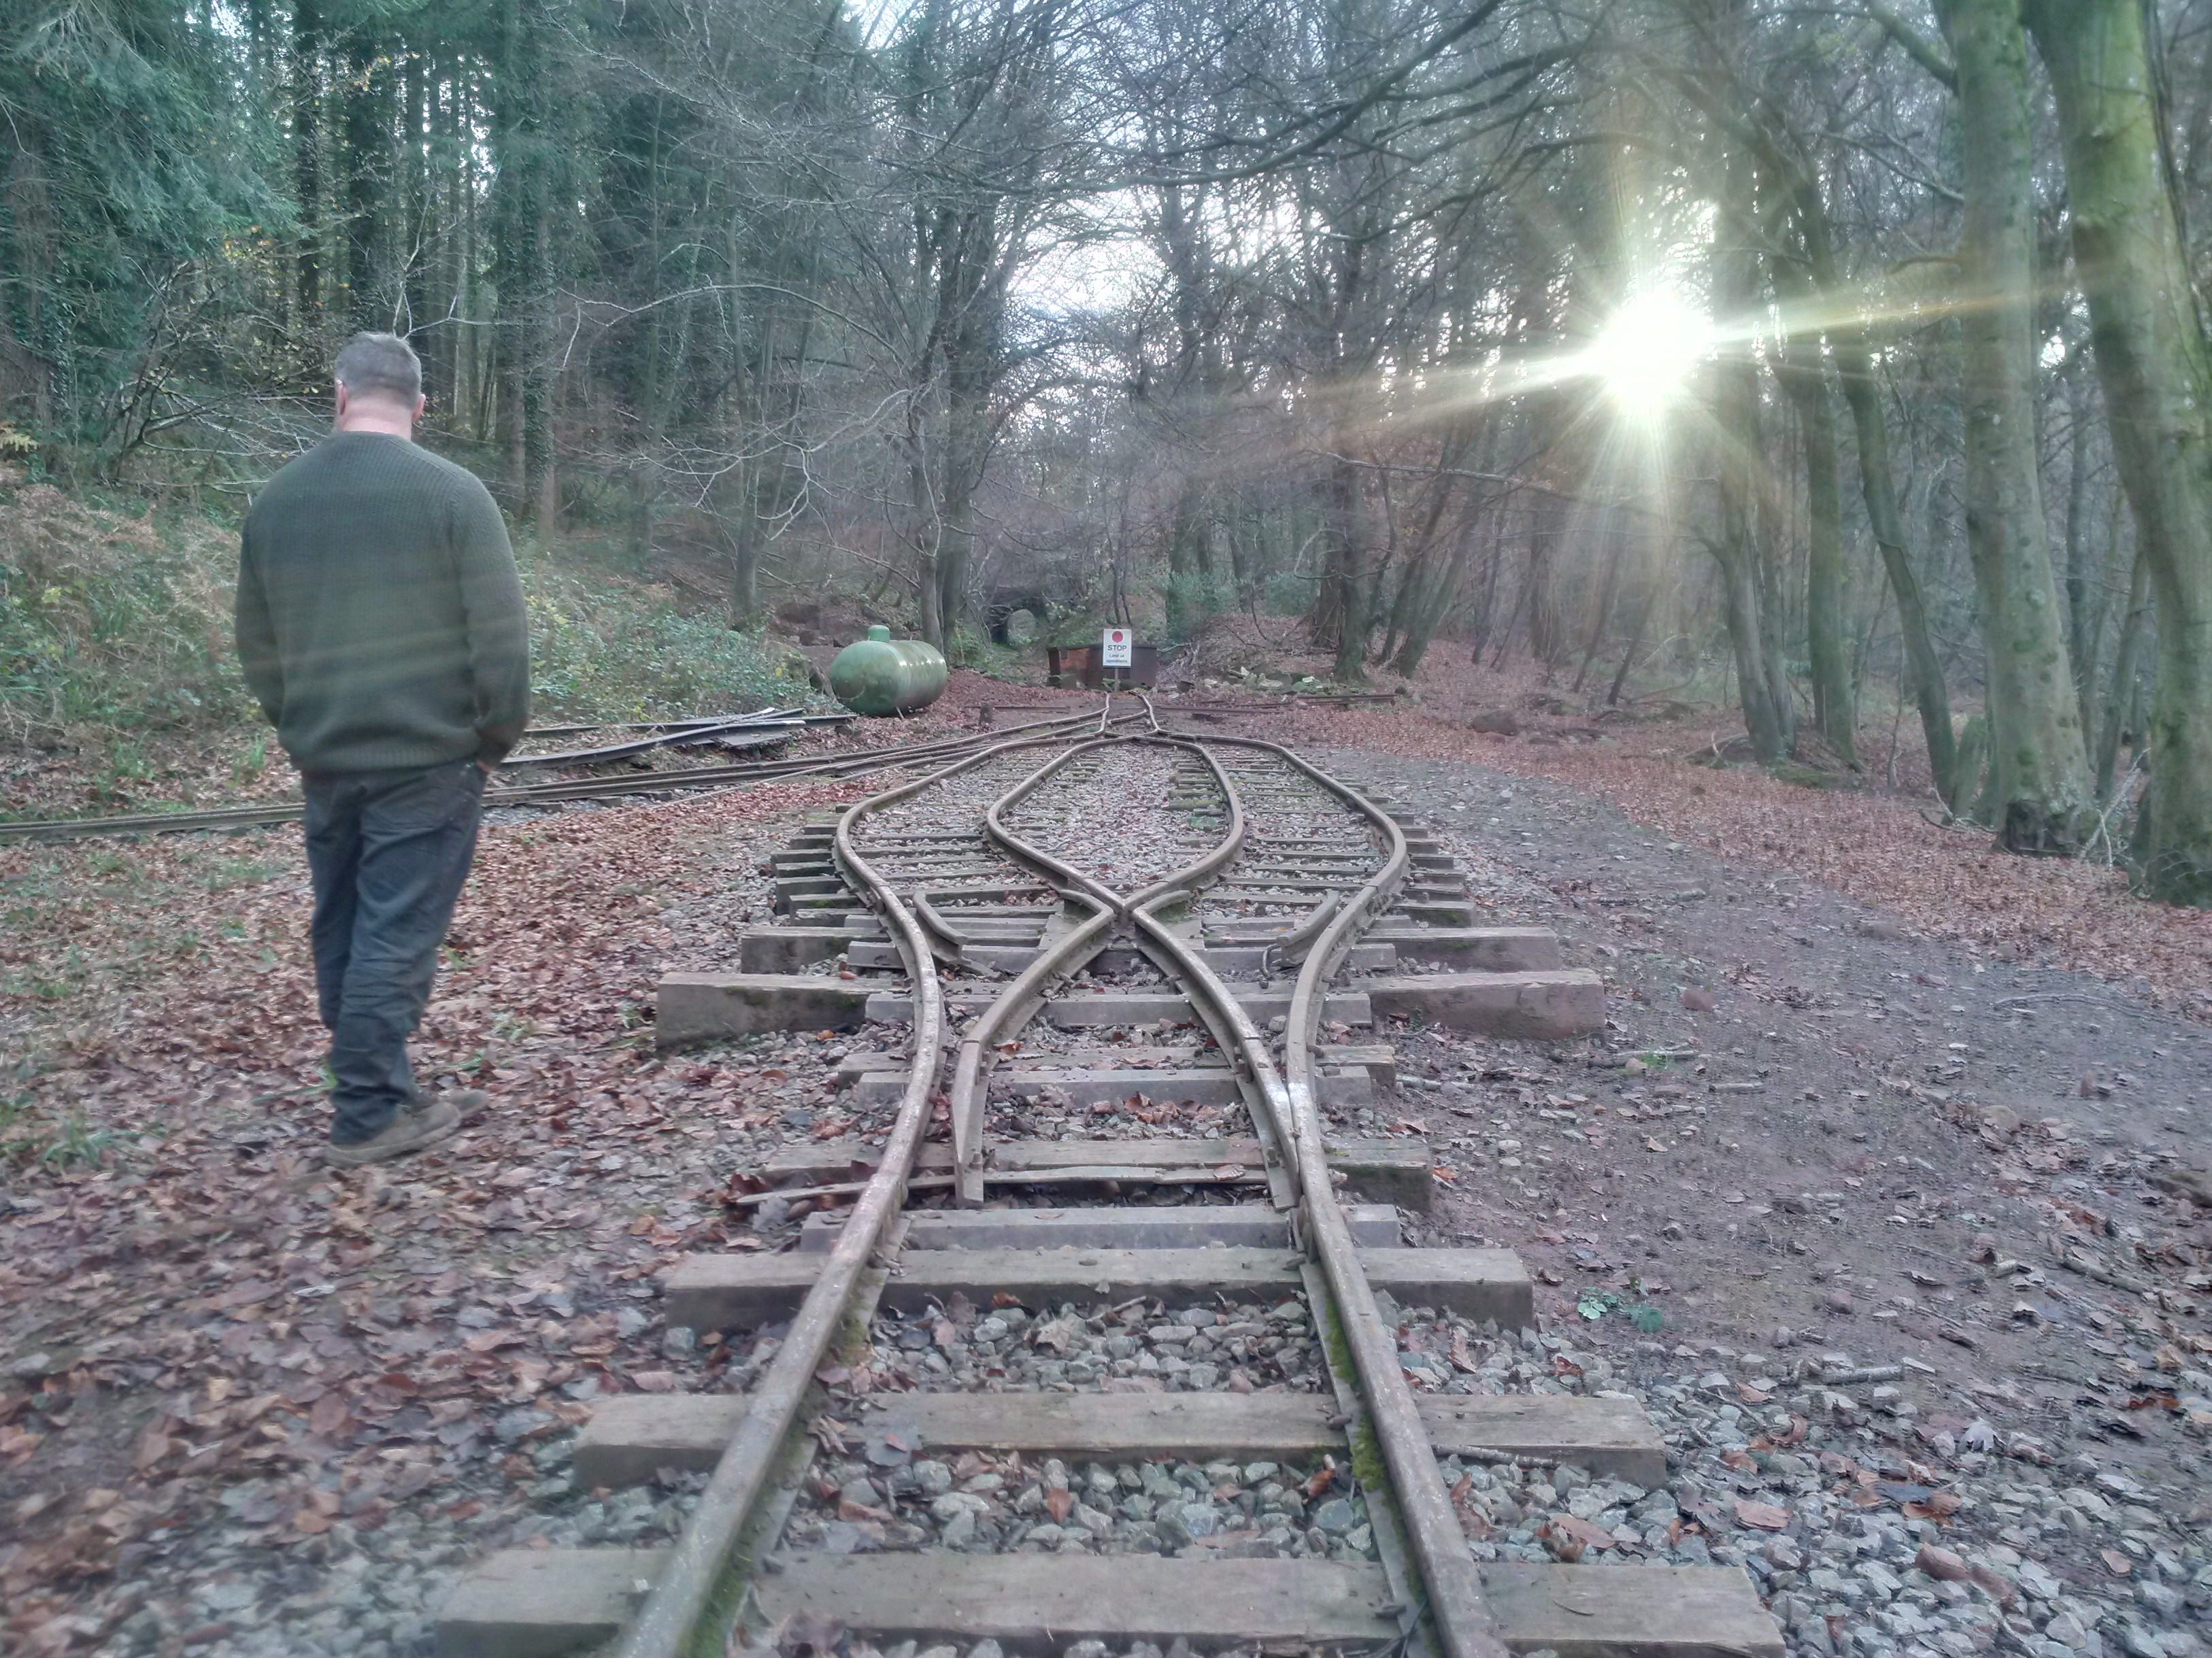 The running line after the leaves were removed